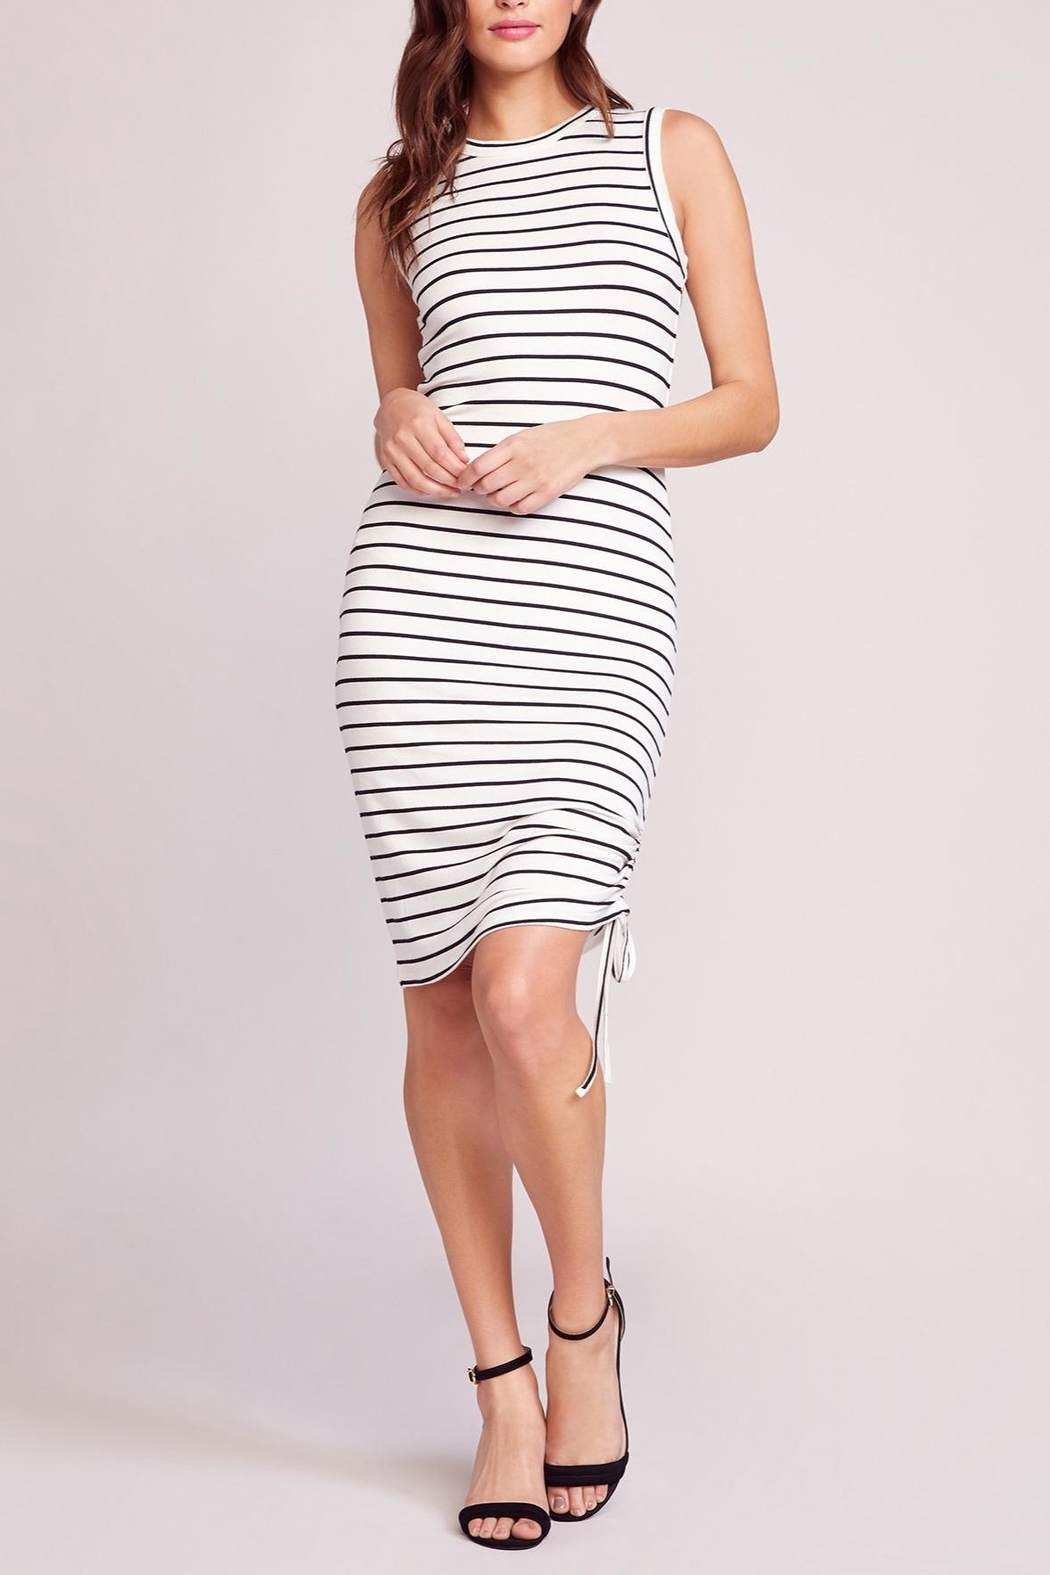 BB Dakota What's-The-Ruche Stripe Dress - Front Cropped Image